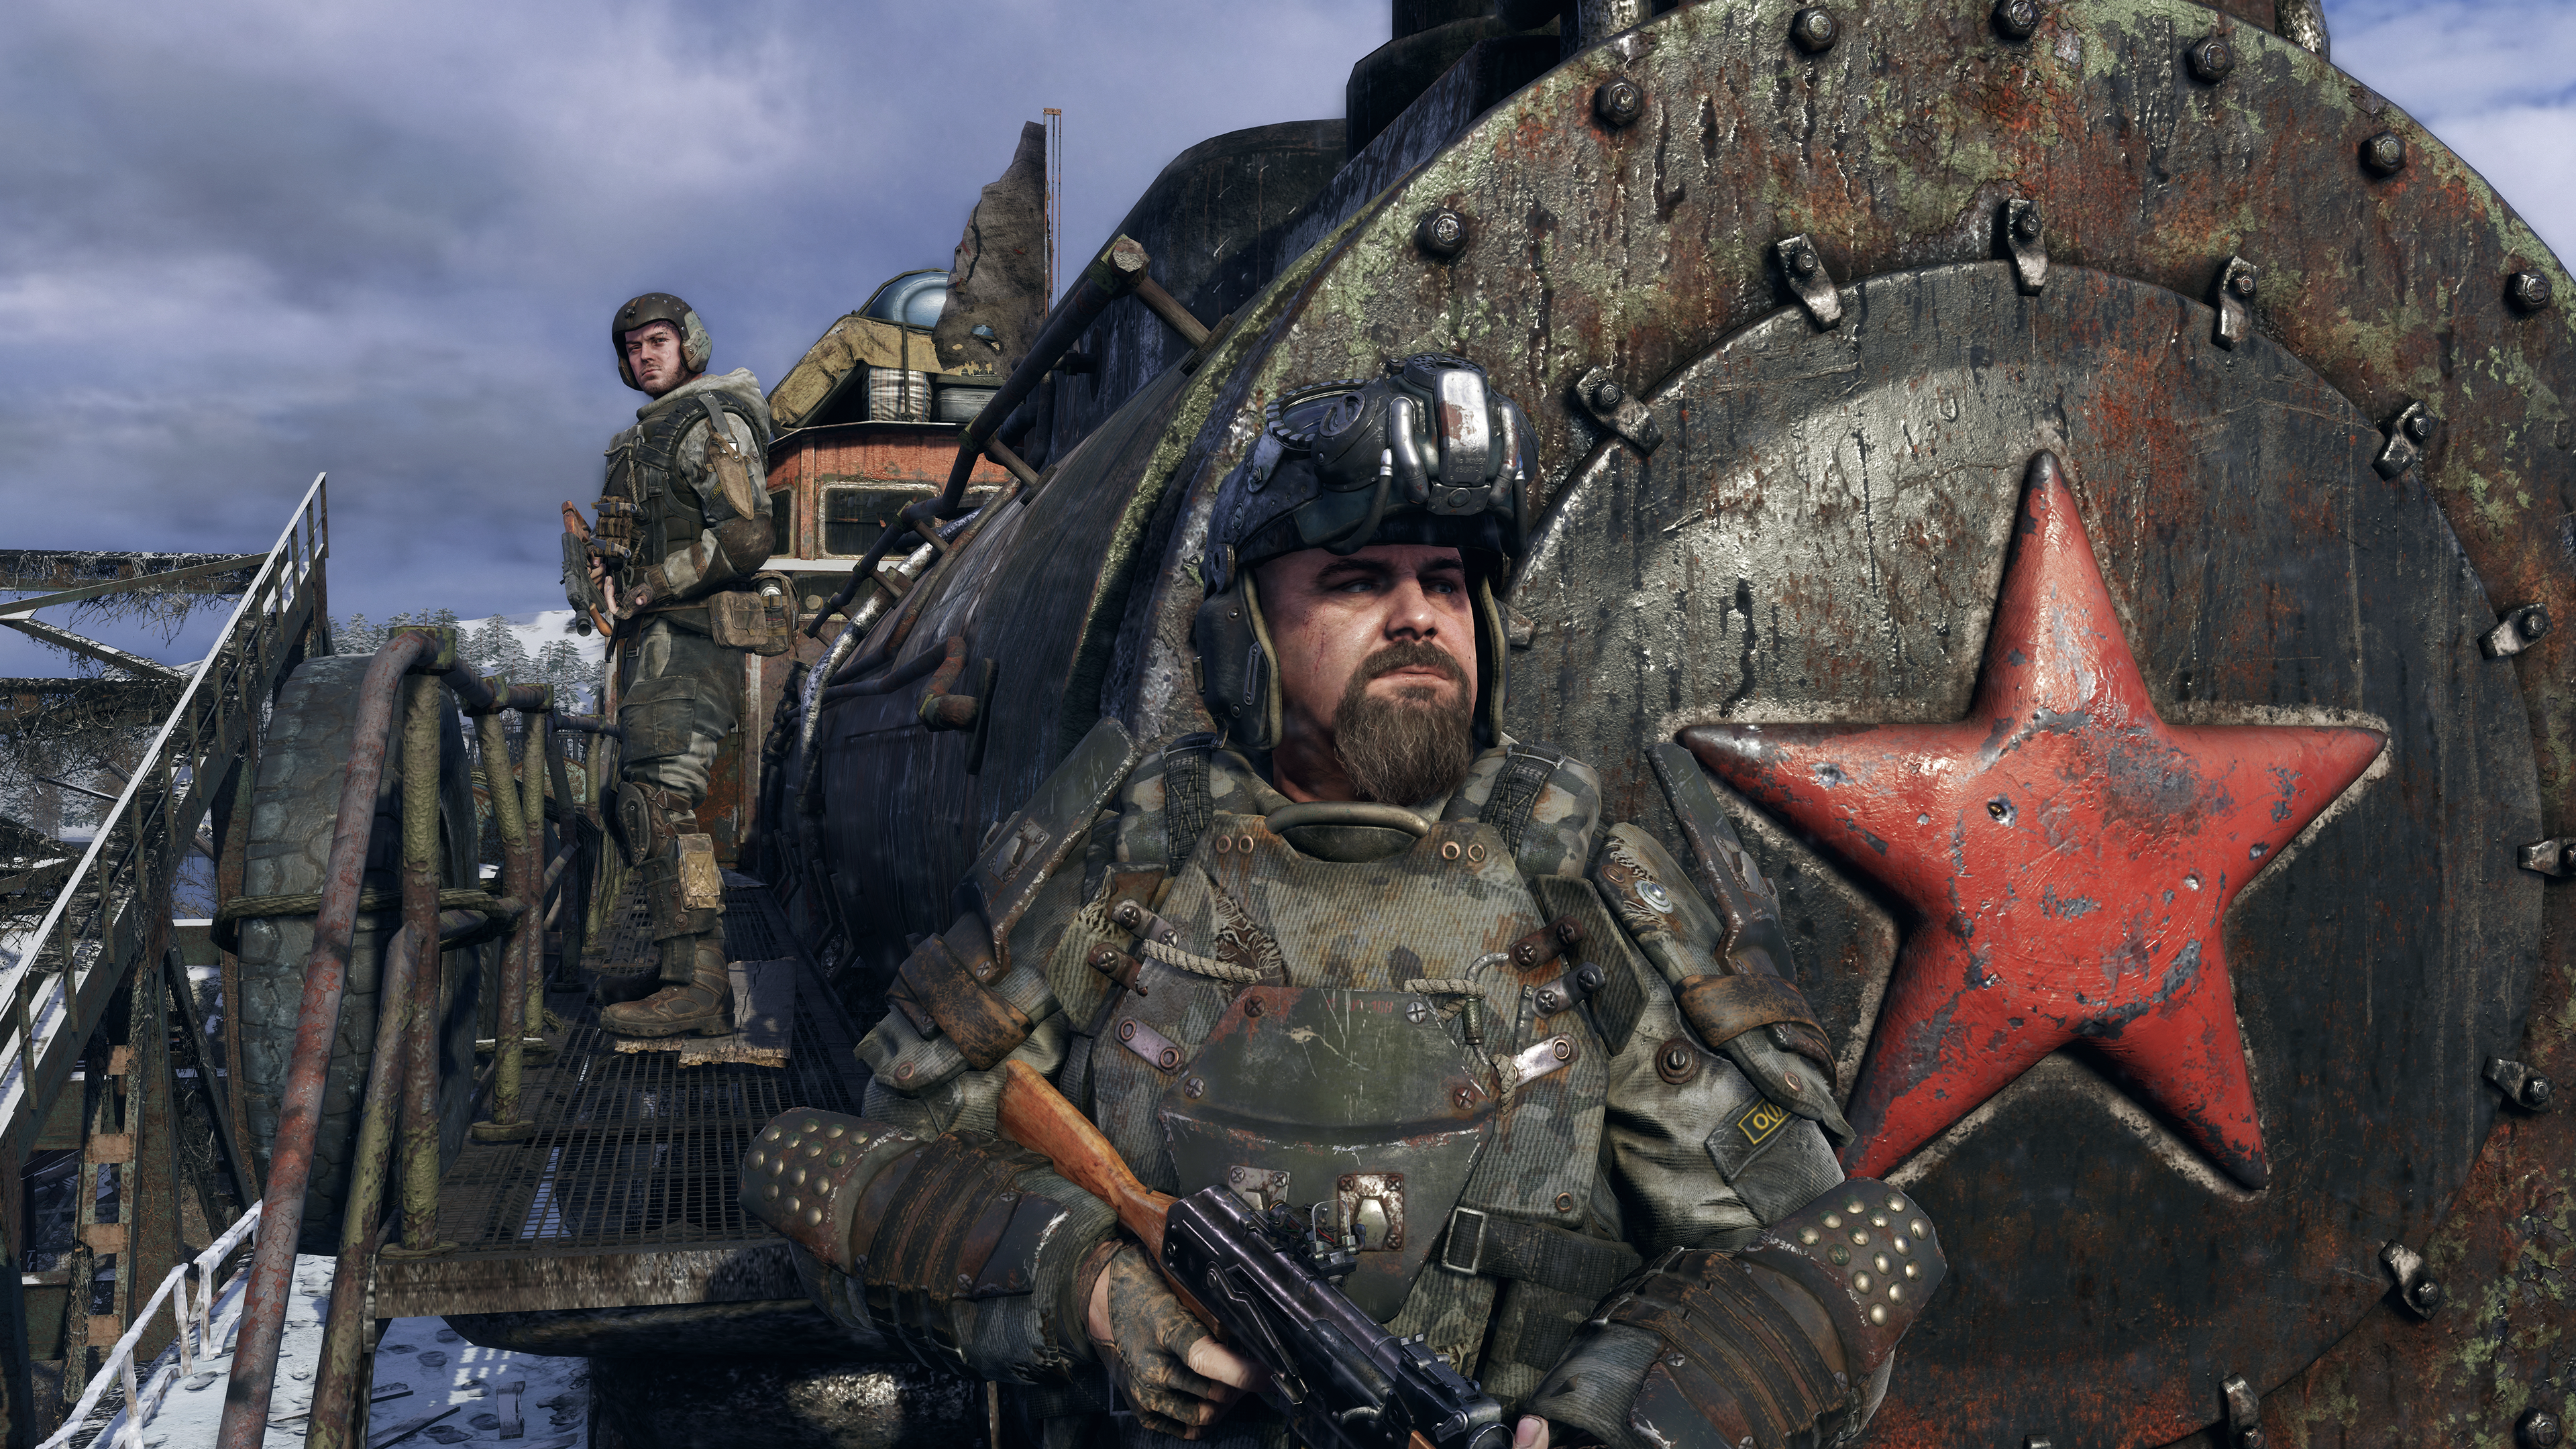 Metro 2033 movie on hold, and it's probably a good thing